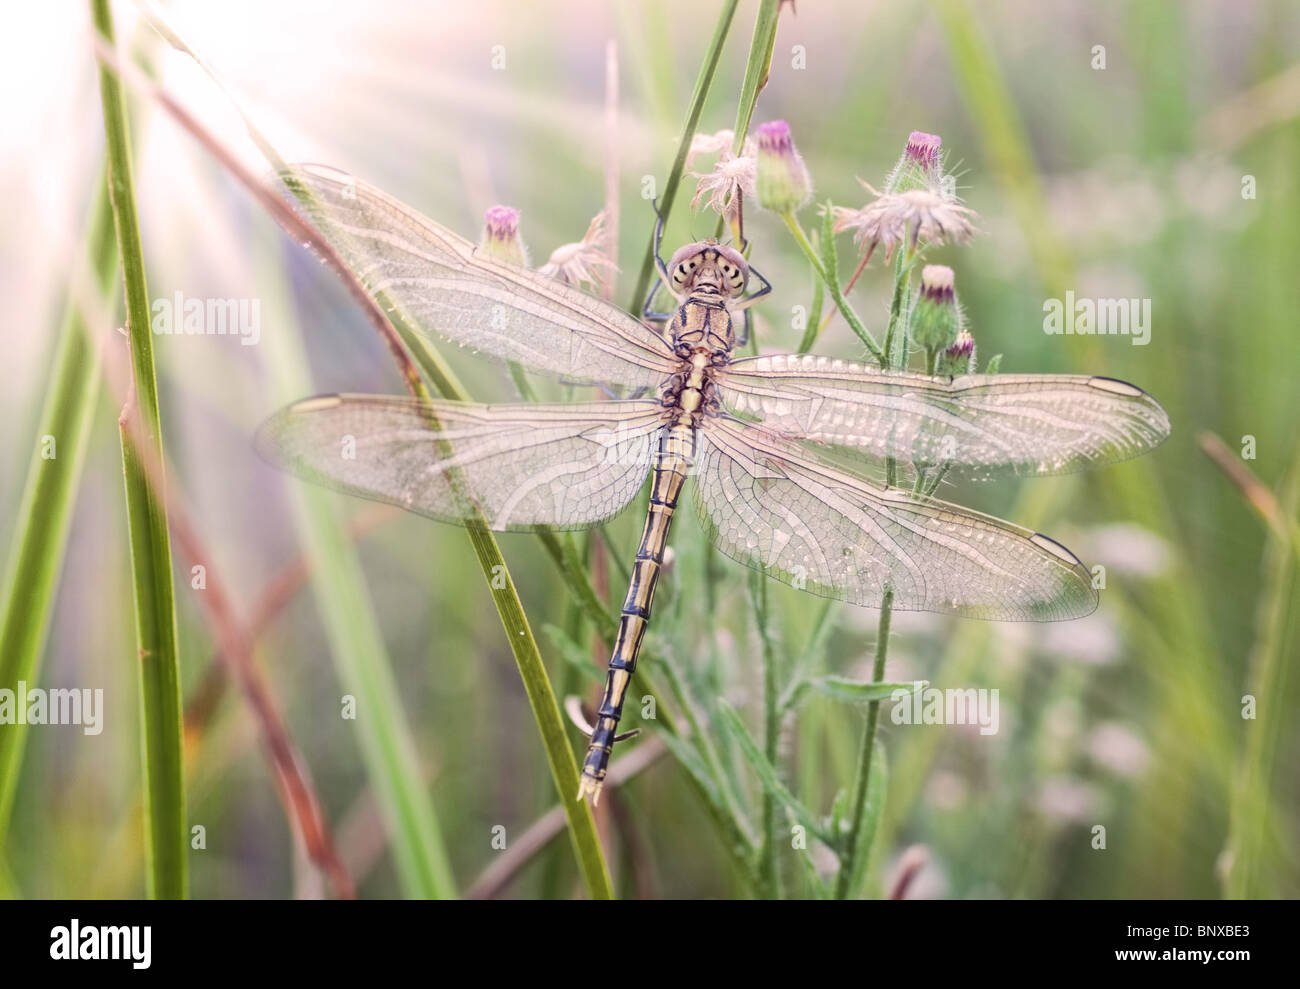 newly hatched dragonfly waits for the sun to warm its wings - Stock Image